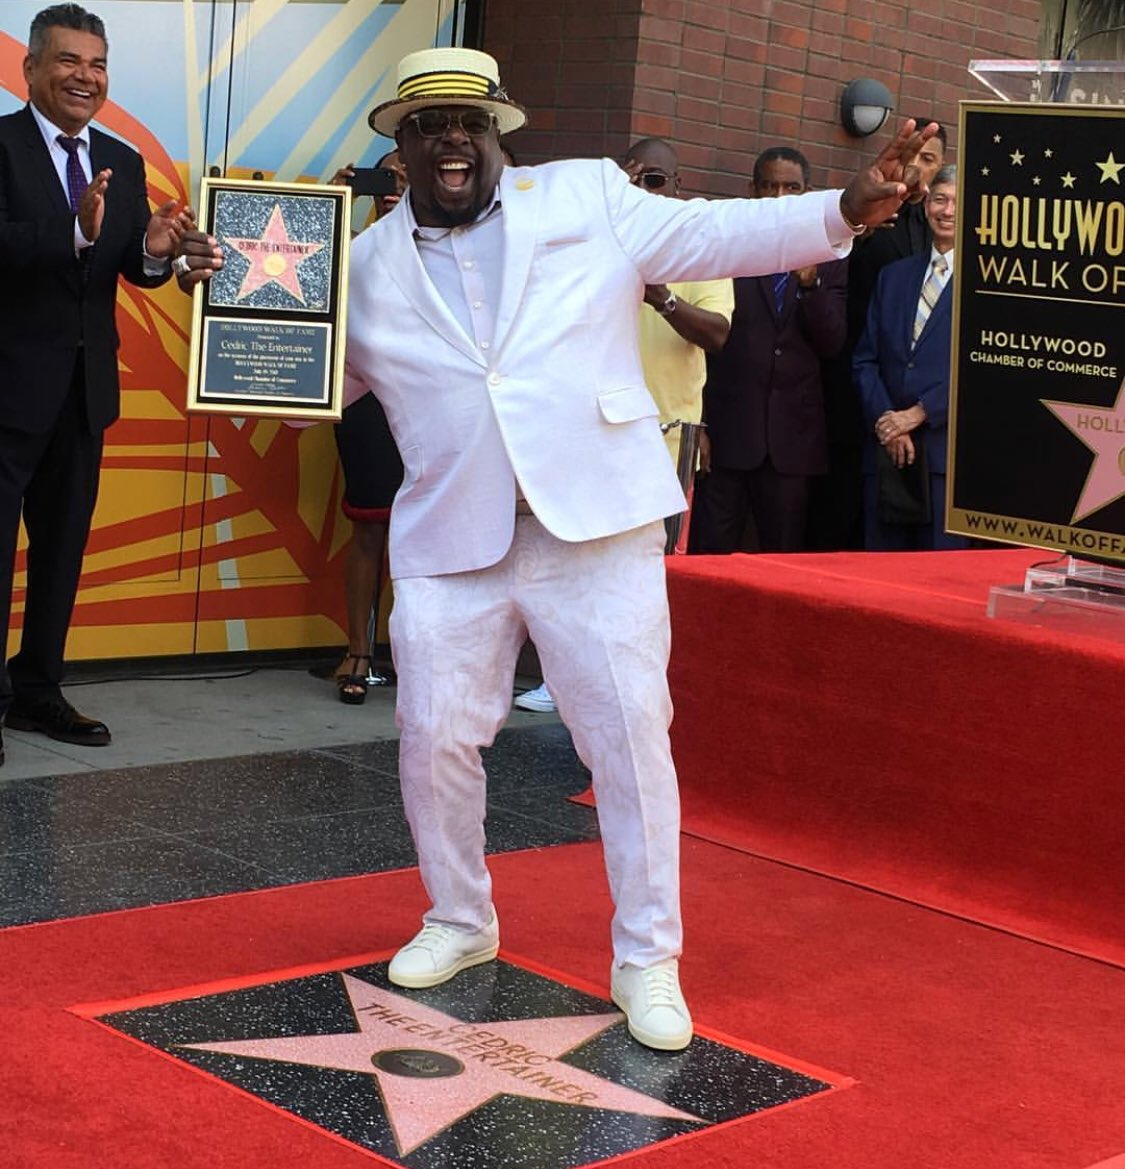 test Twitter Media - It's official! Congrats to my brotha @CedEntertainer who got his well deserved #Hollywood star! Nothin he can't do! Proud of you man! #HollywoodWalkOfFame https://t.co/phXwZvRuSv